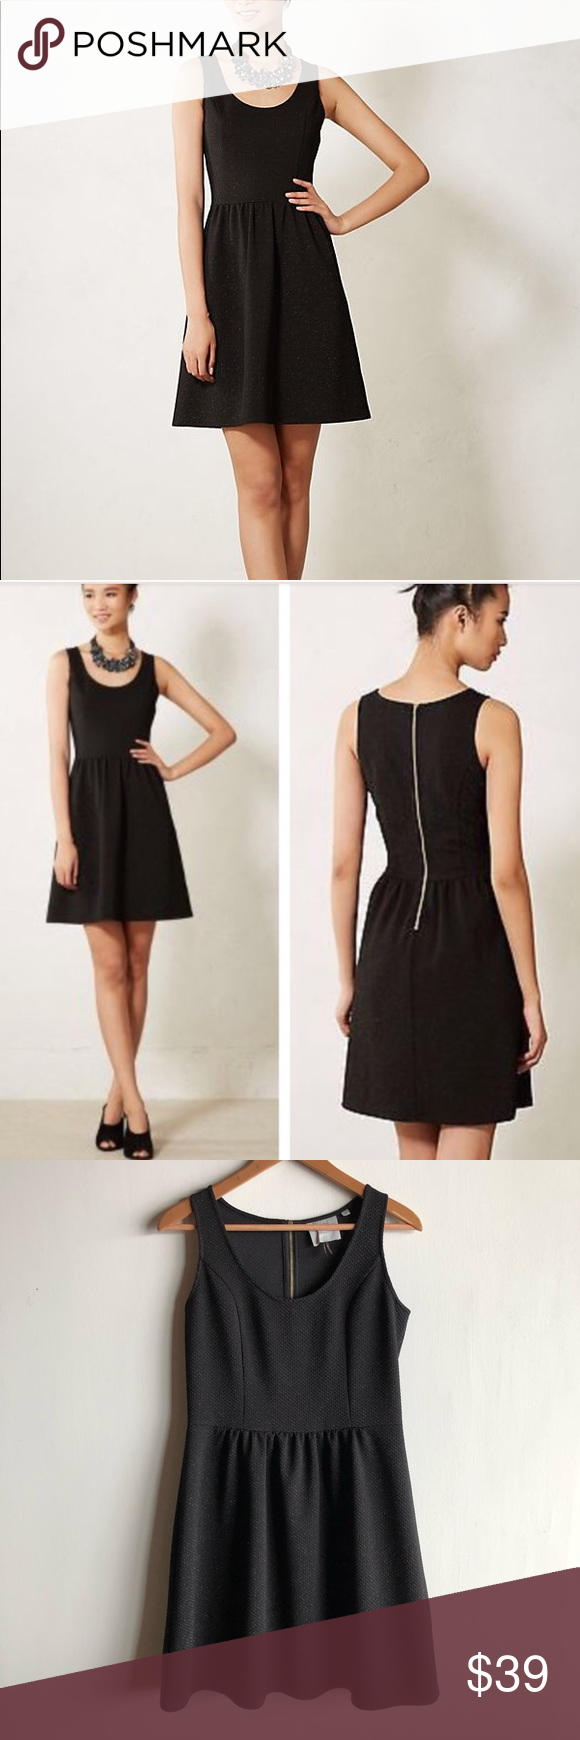 ab20a1f9fe2c Anthropologie HD in Paris black Starry Night dress Gorgeous black fit and  flare dress with a